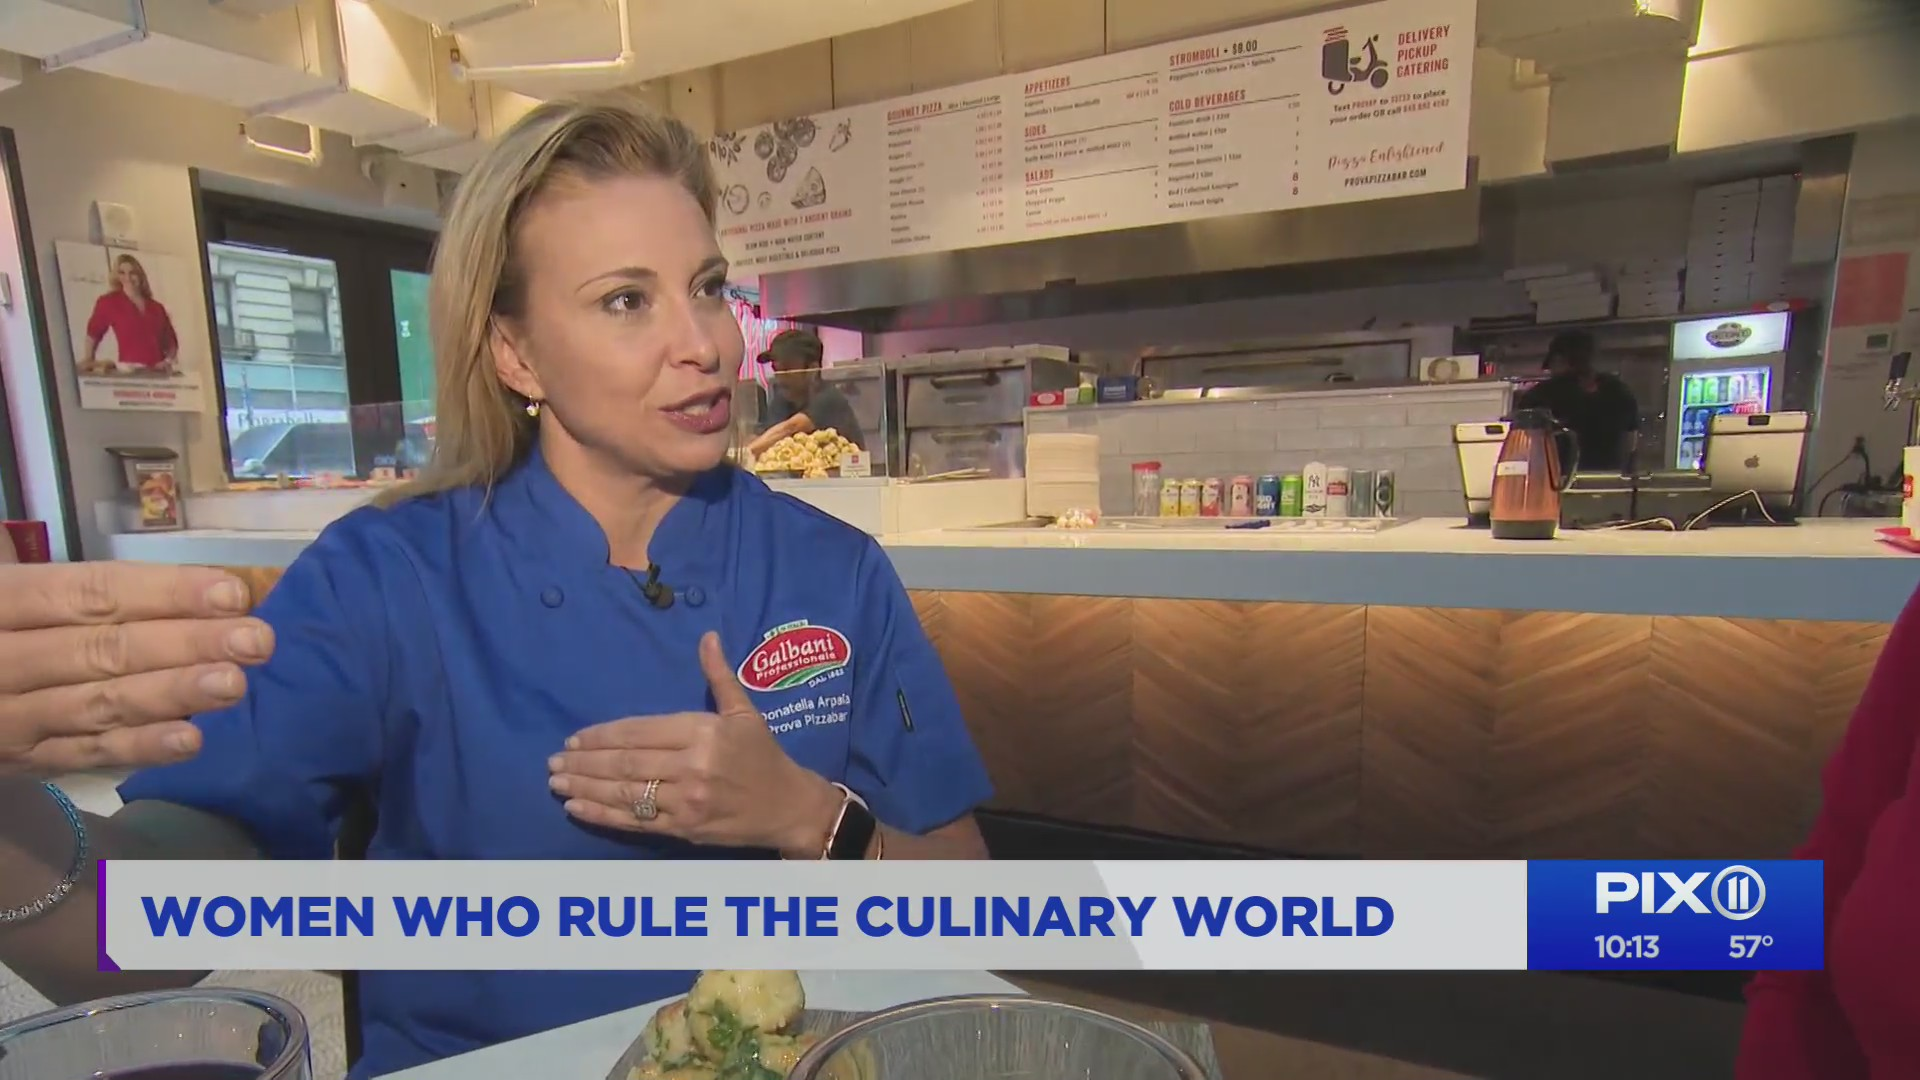 Restauranteur Donatella Arpaia tells her story on the PIX11 Morning News. (PIX11 News)